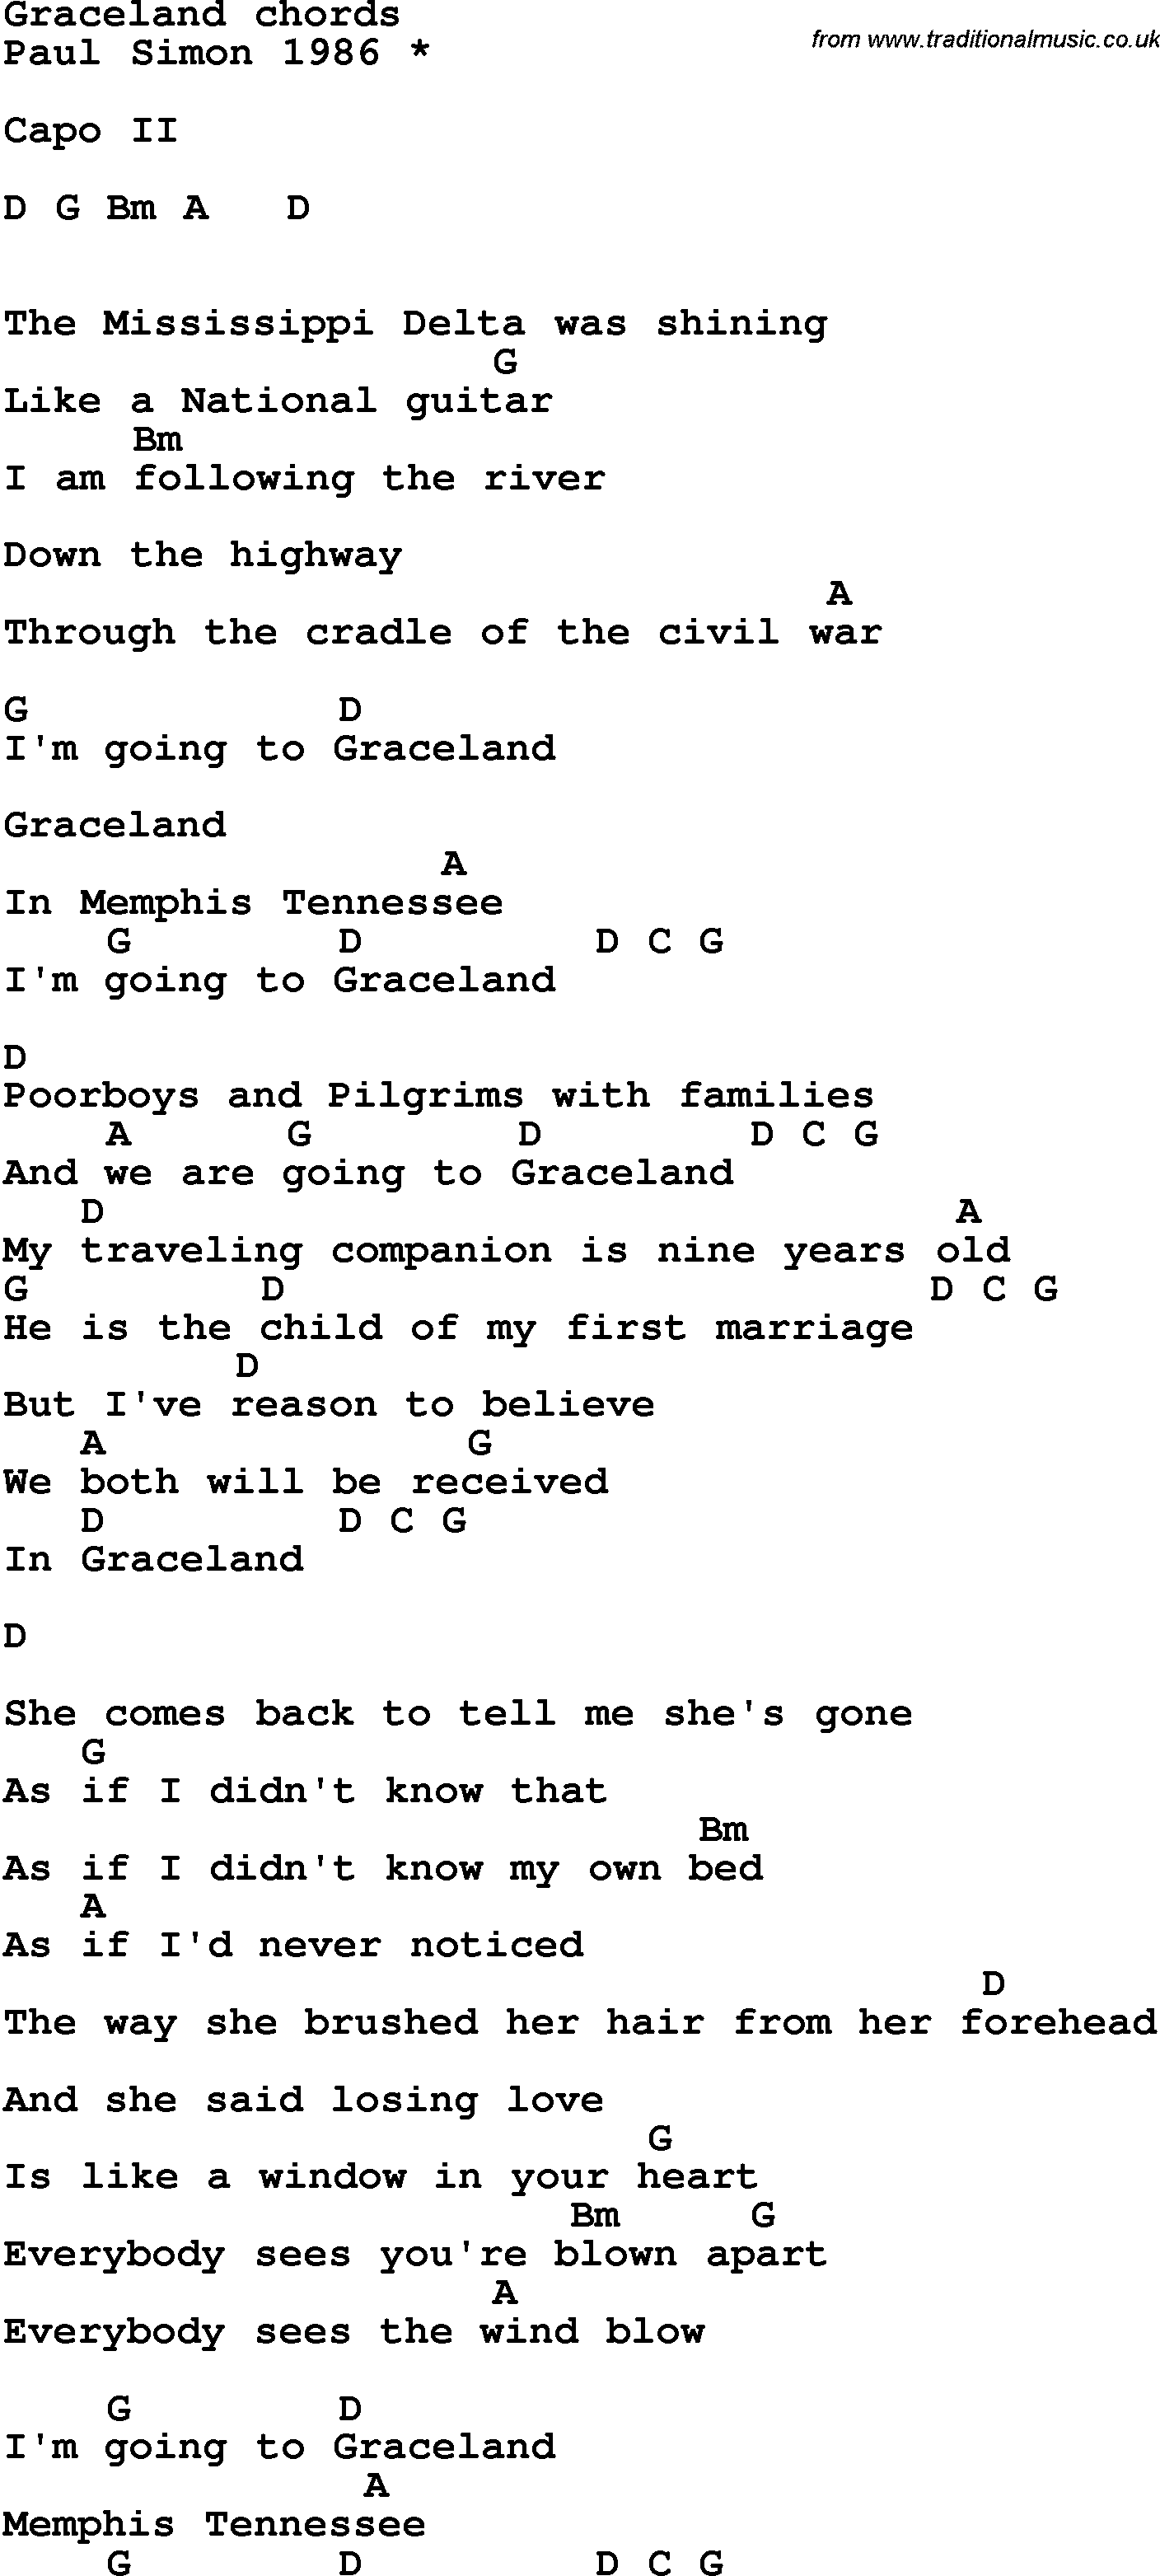 Song Lyrics With Guitar Chords For Graceland